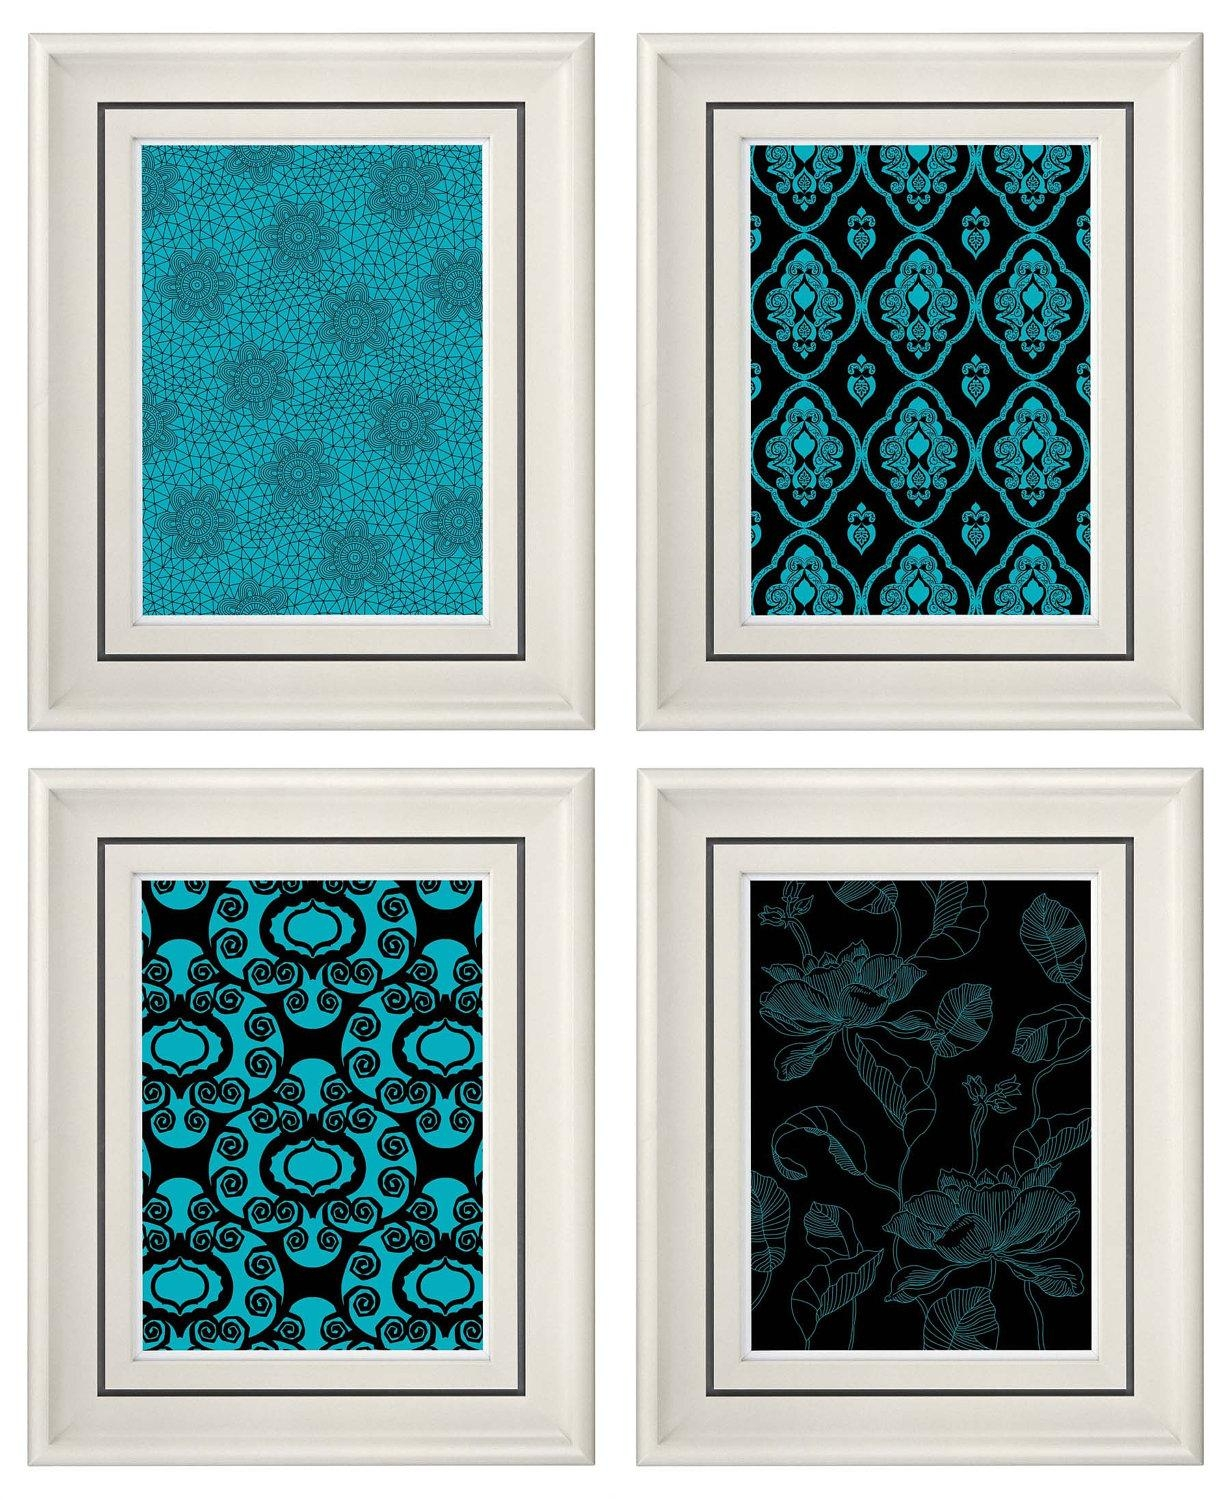 Wall Decor Turquoise – Home Design Regarding Turquoise And Black Wall Art (Image 20 of 20)